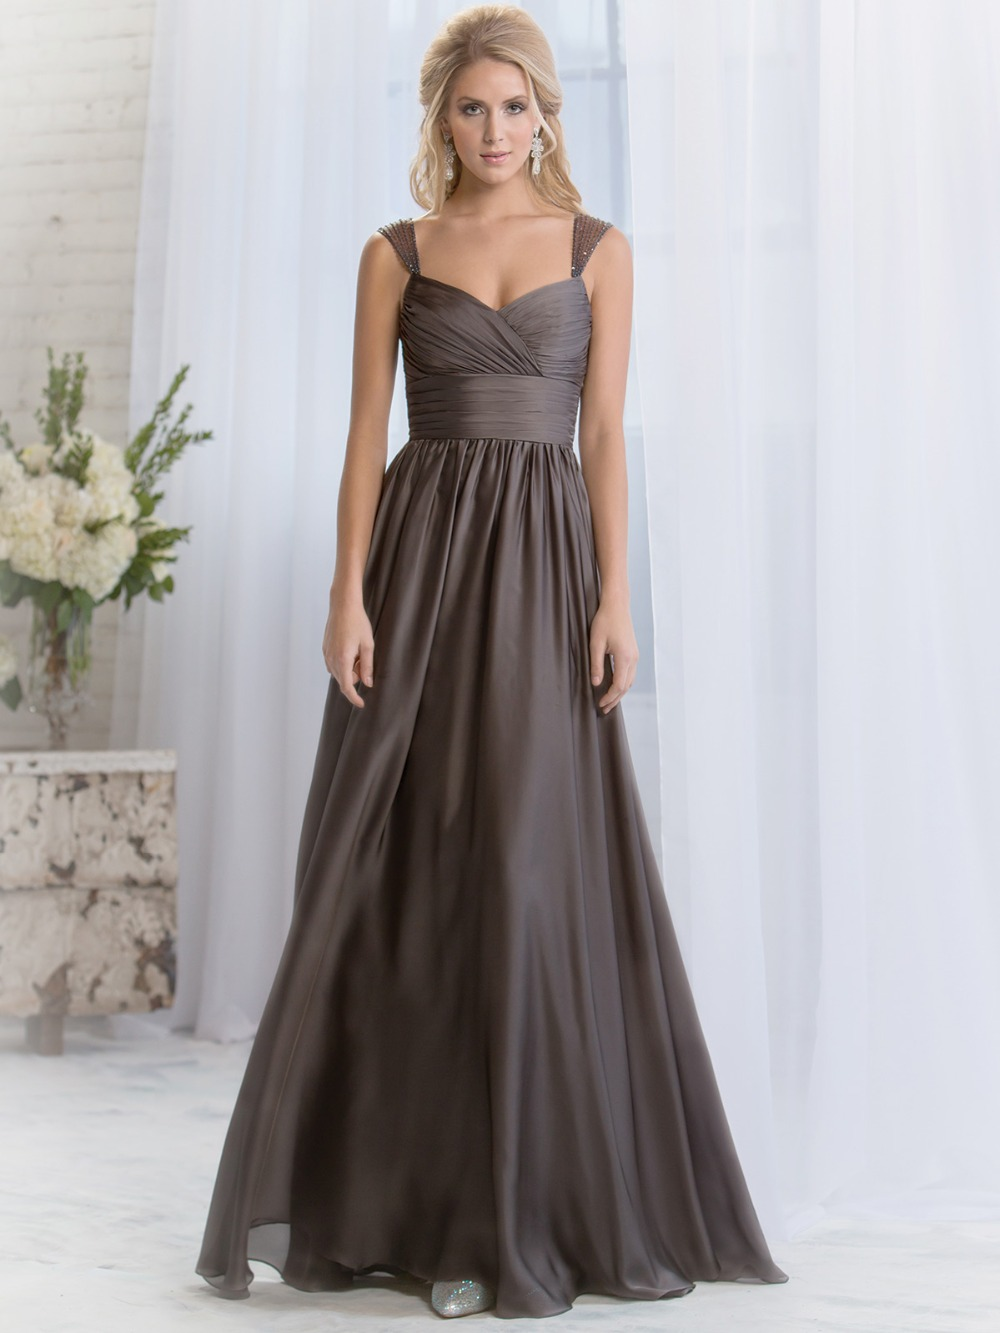 Modest Y Chiffon Beading Dark Brown Wedding Guest Dress Maid Of Honor Dresses Long Bridesmaid In From Weddings Events On